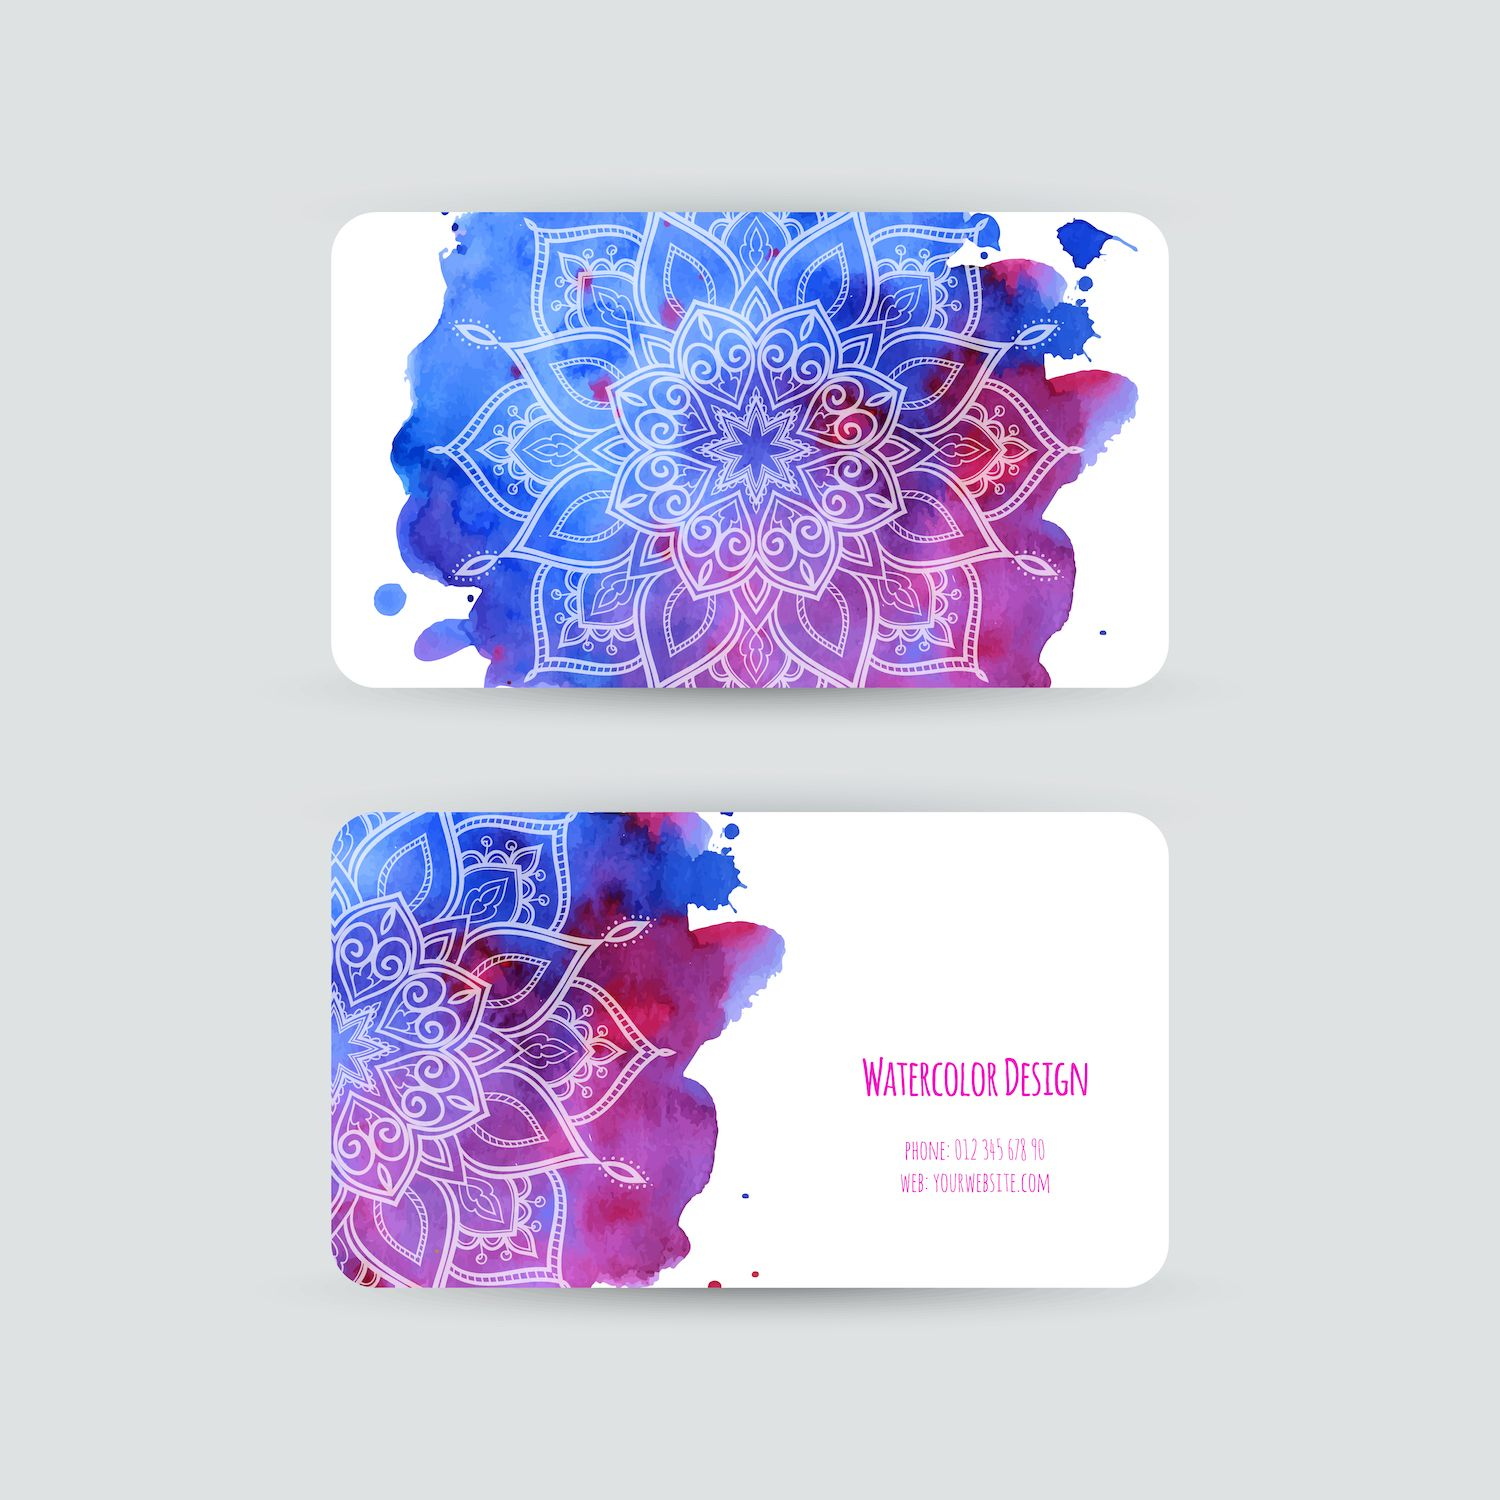 Fashion business card designg 15001500 opulensi business our design team specializes in los angeles fashion business card design we can take our expertise and use it to create an effective business card for you magicingreecefo Images